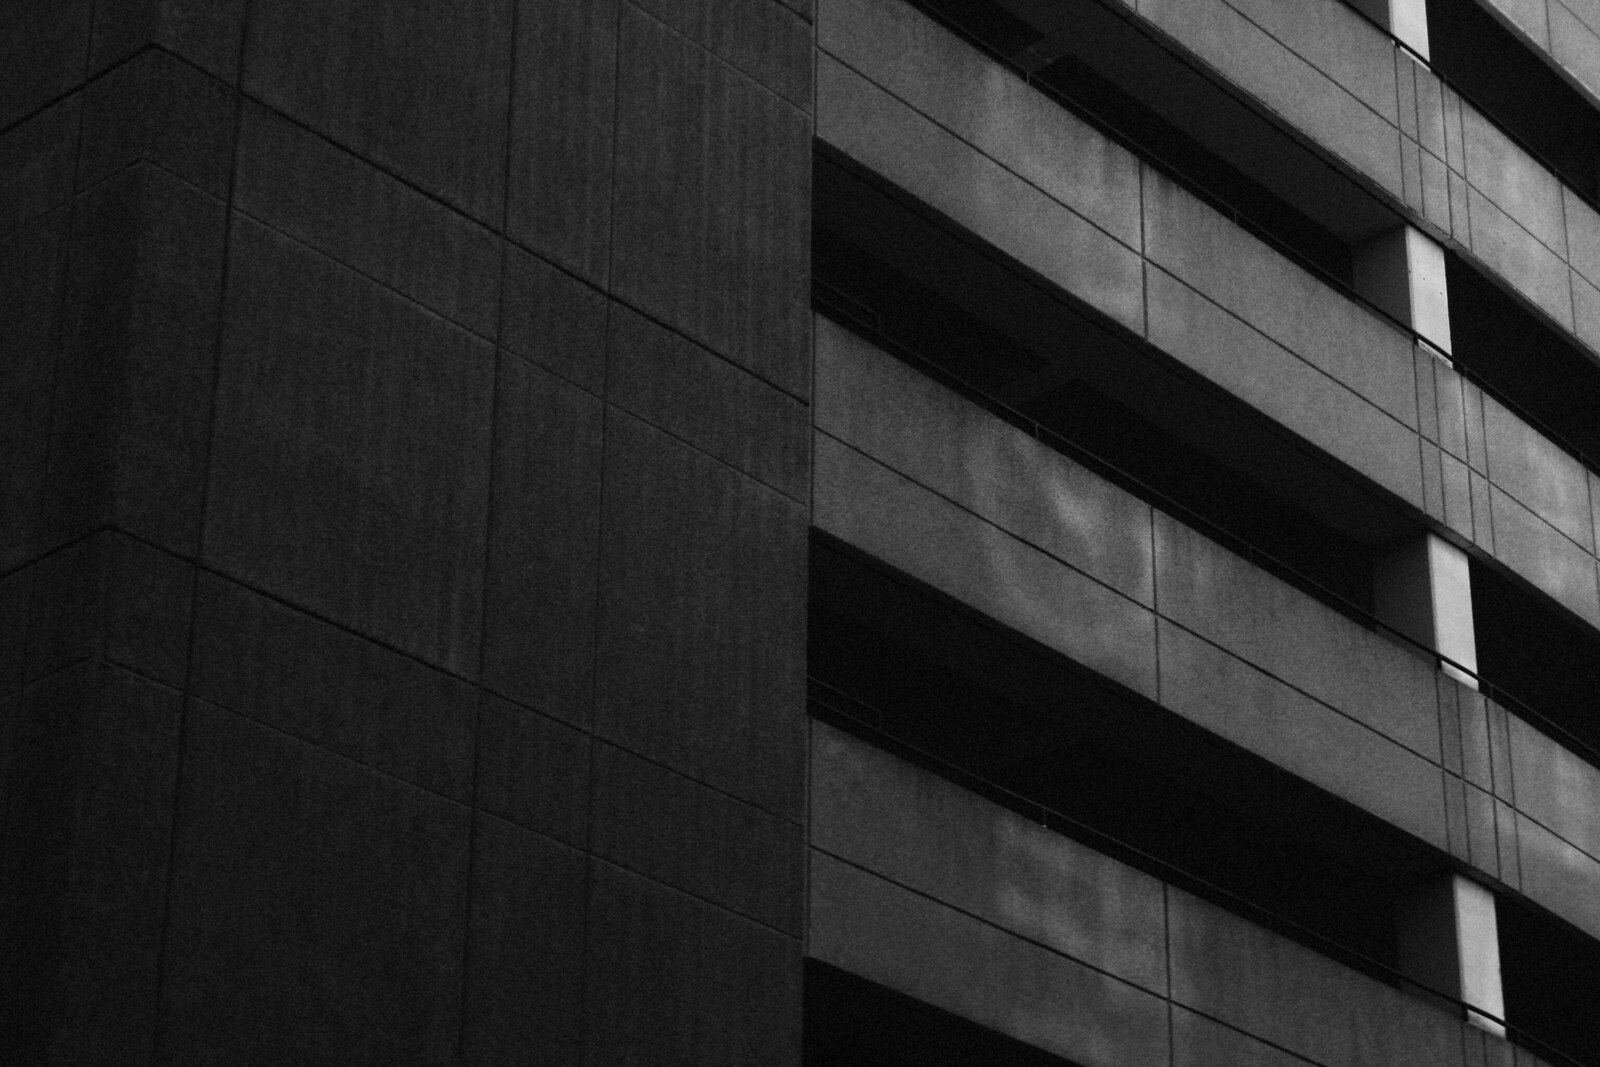 Parking Garage, Midtown, Atlanta, November 2014